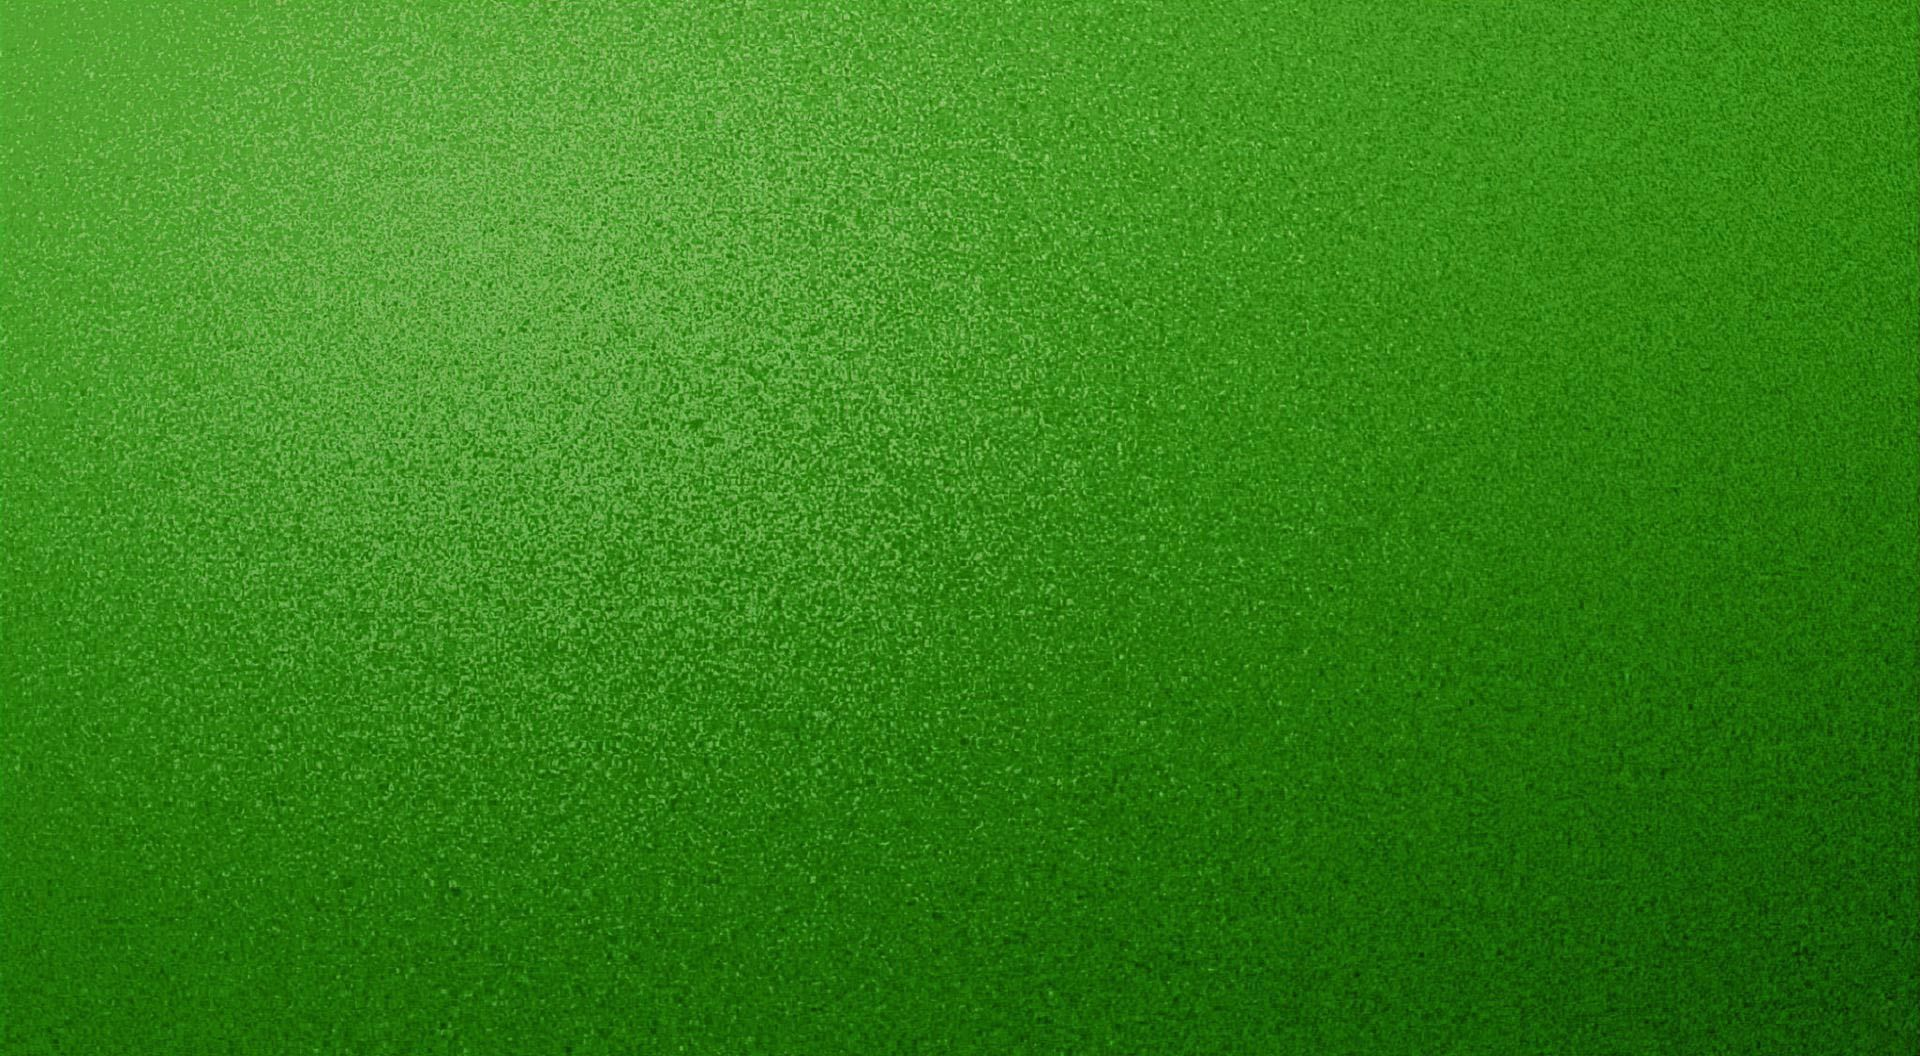 green background Green textured speckled desktop